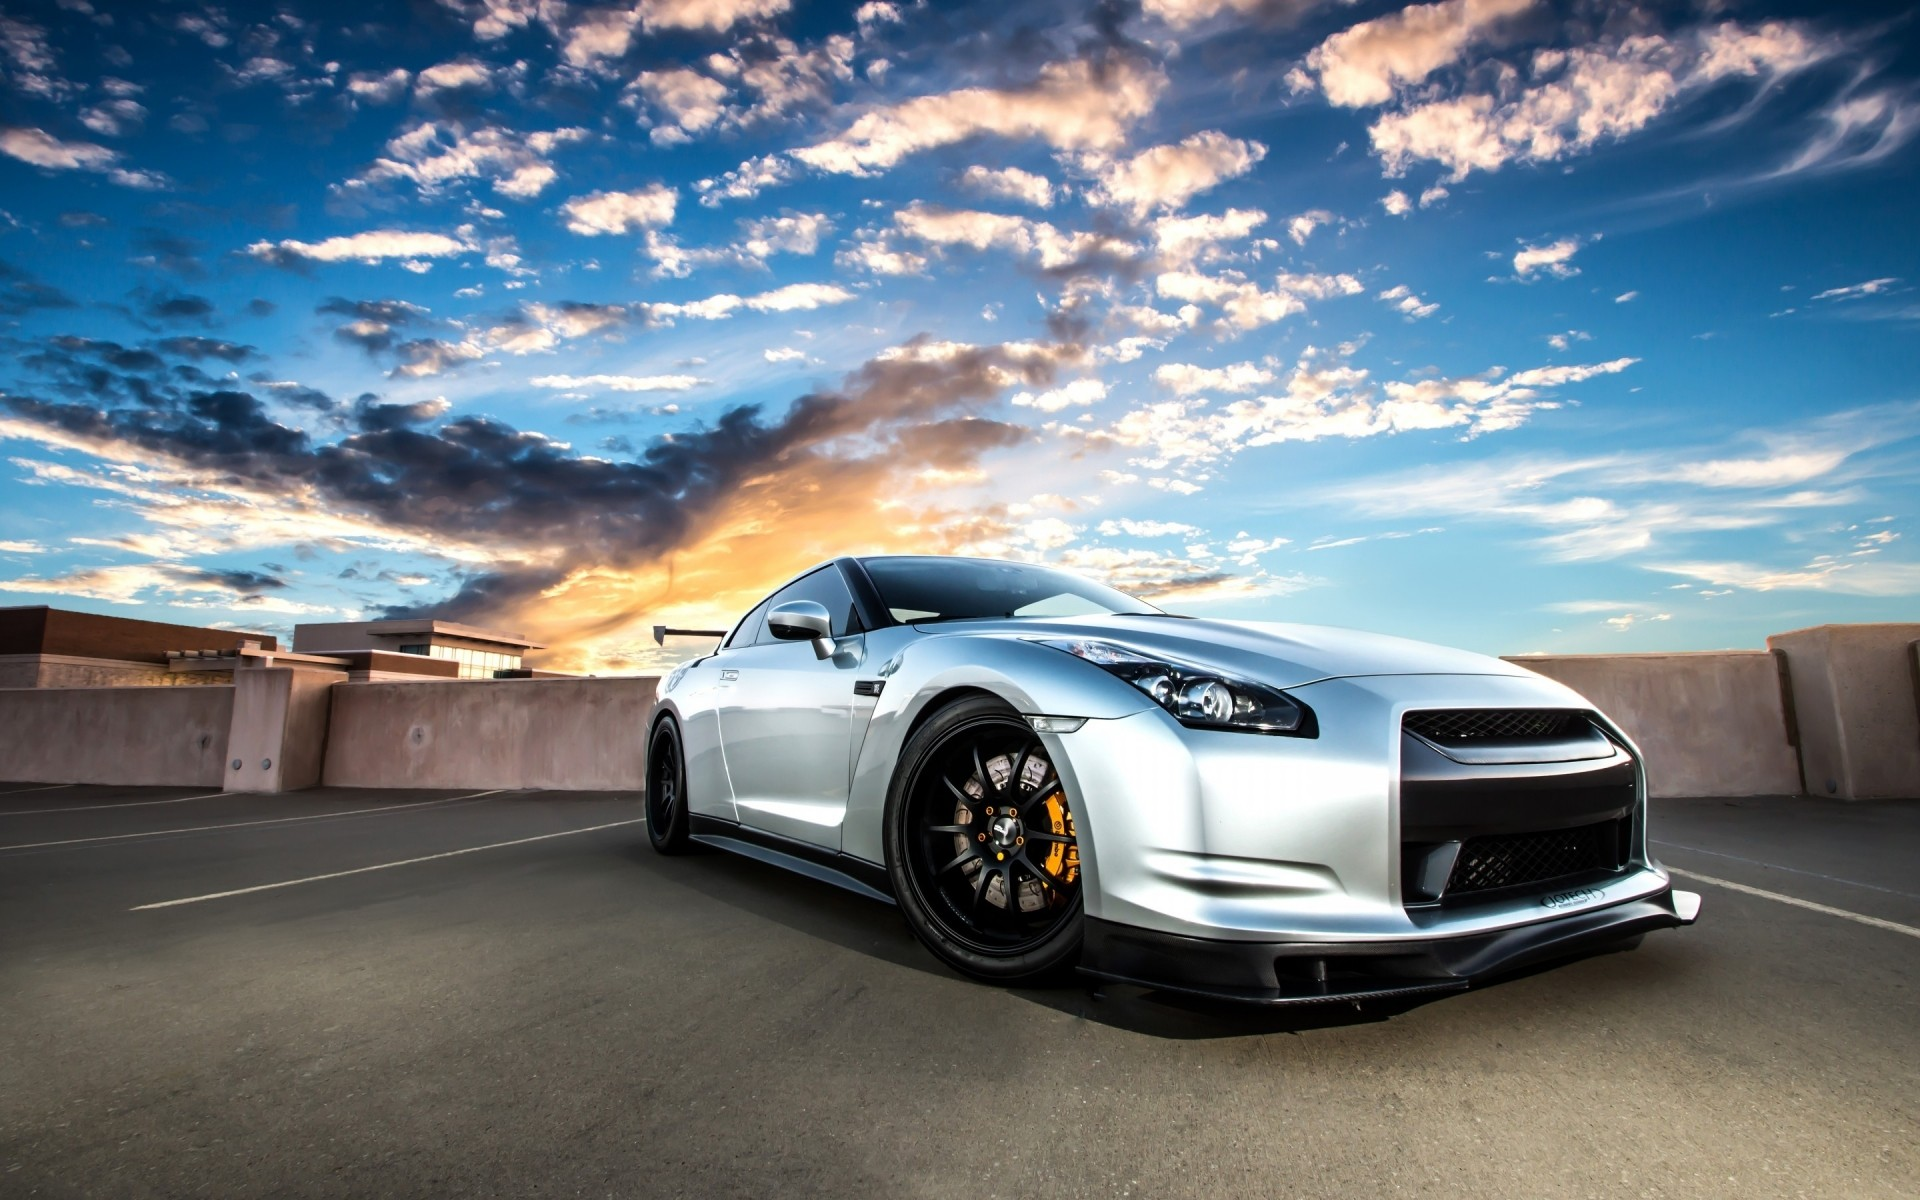 nissan car vehicle transportation system asphalt fast drive hurry automotive pavement blacktop road wheel travel noon nissan gt-r35 nissan gt muscle cars sport cars gorgeous